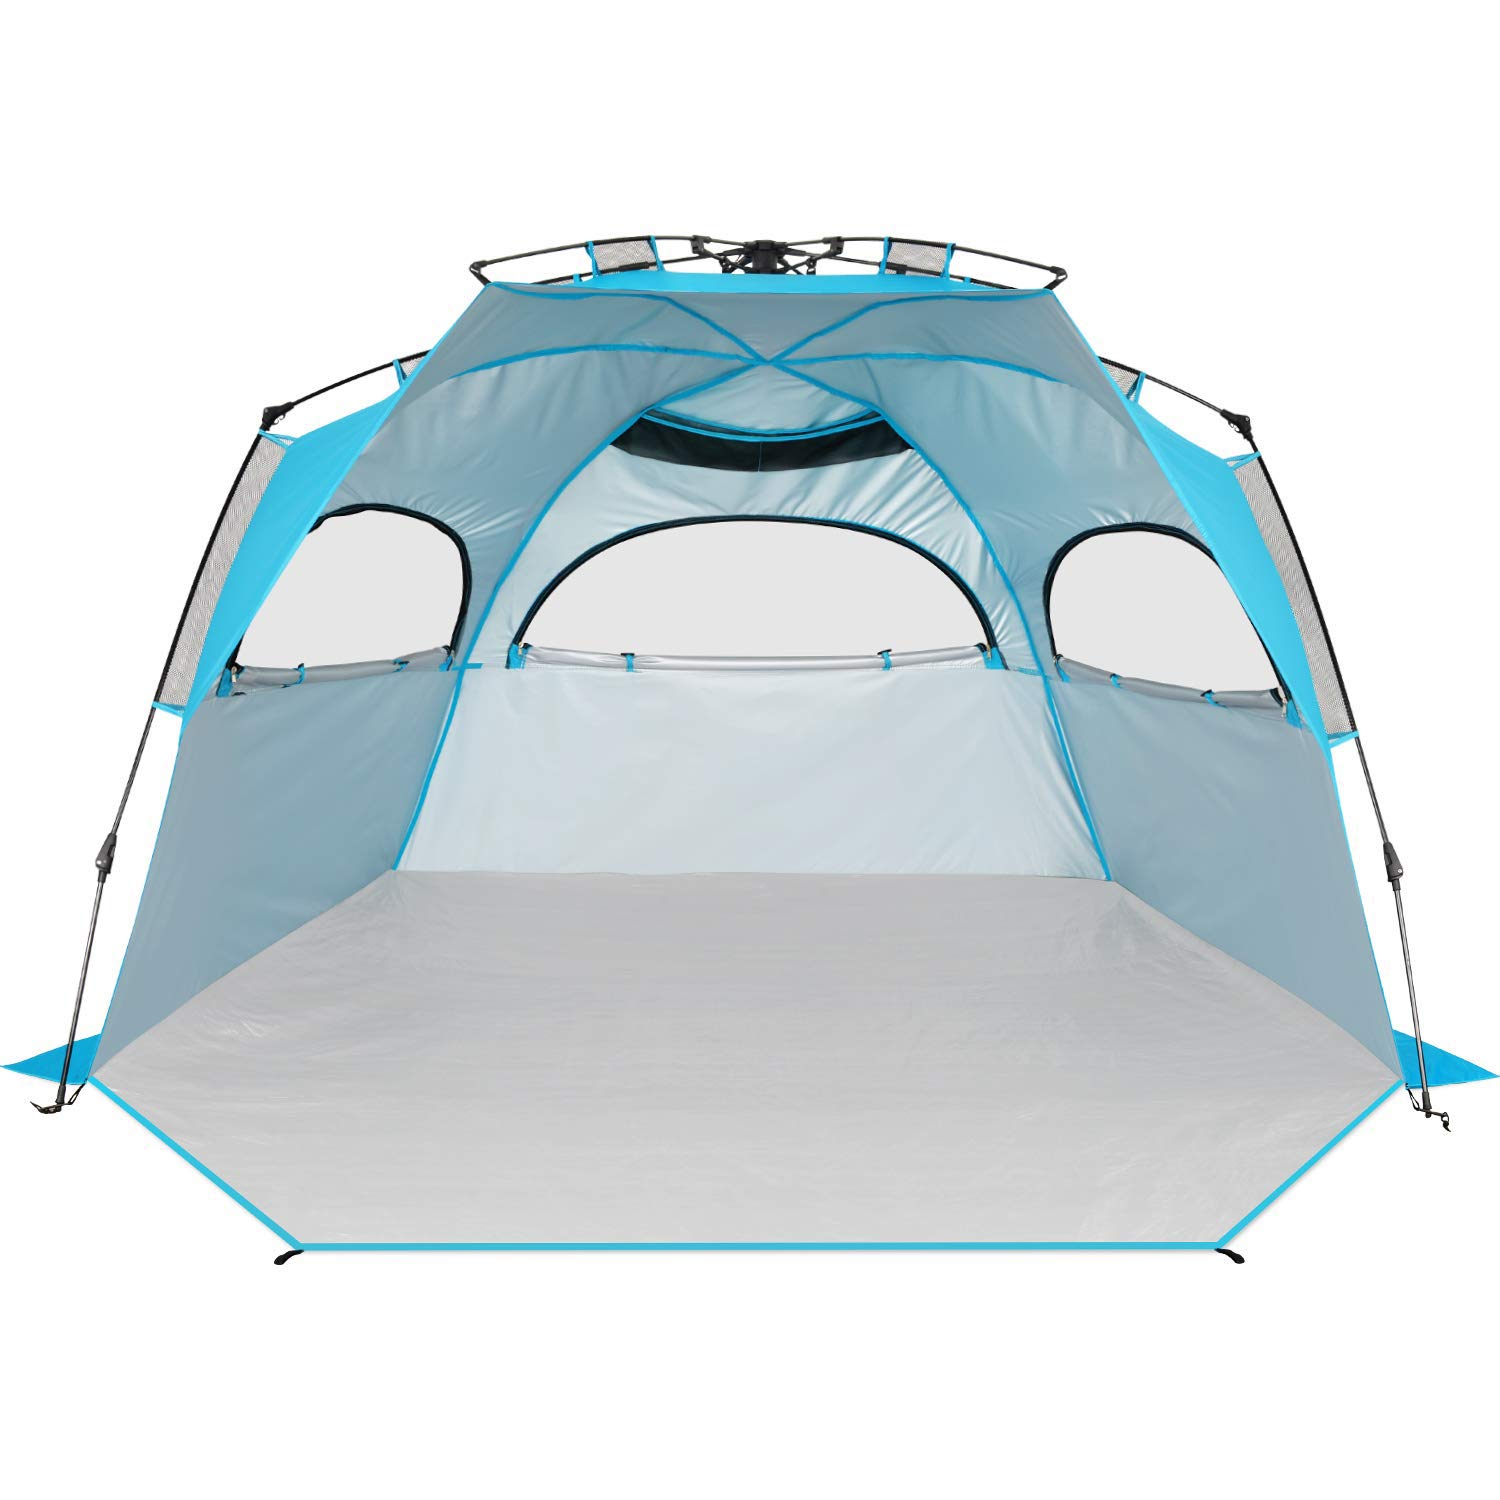 BATTOP 4 Person Instant Beach Tent Sun Shelter for Family - Easy Set Up Sun Shade Outdoor by BATTOP